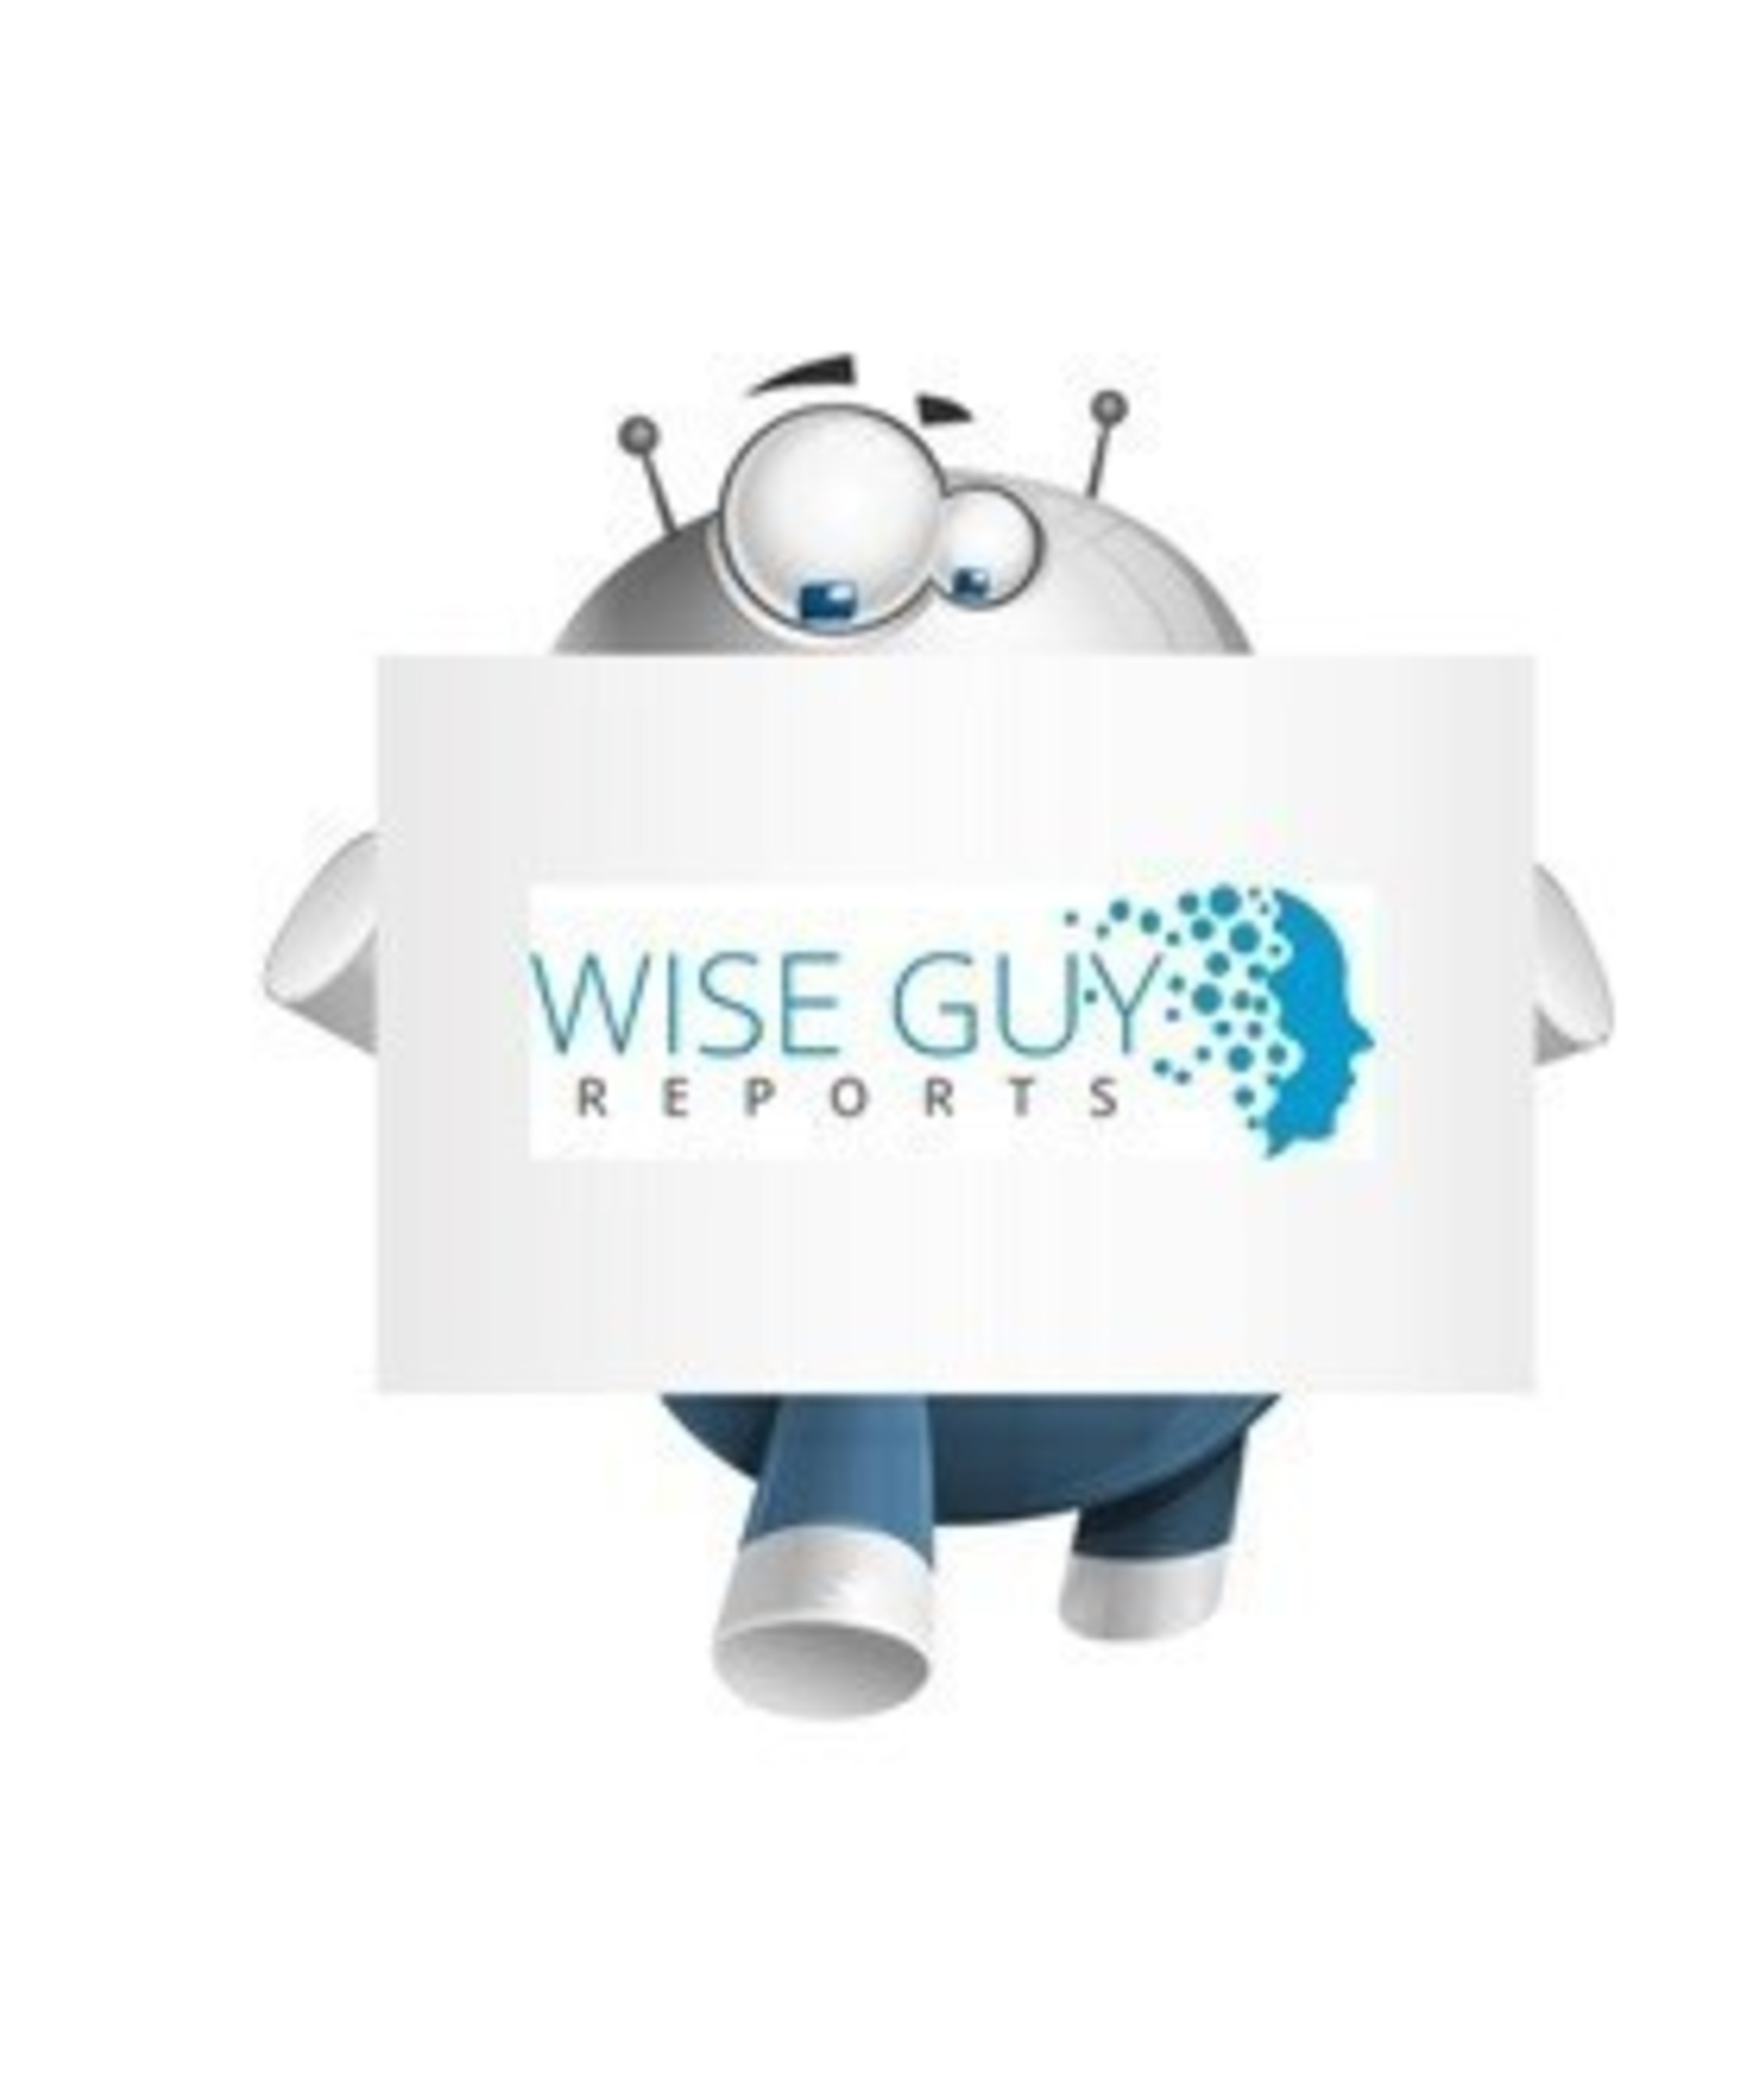 PIN Diodes Industry to 2021 Global and Chinese Sales, Shares and Consumption Market Research Report Available at WiseGuyReports.com